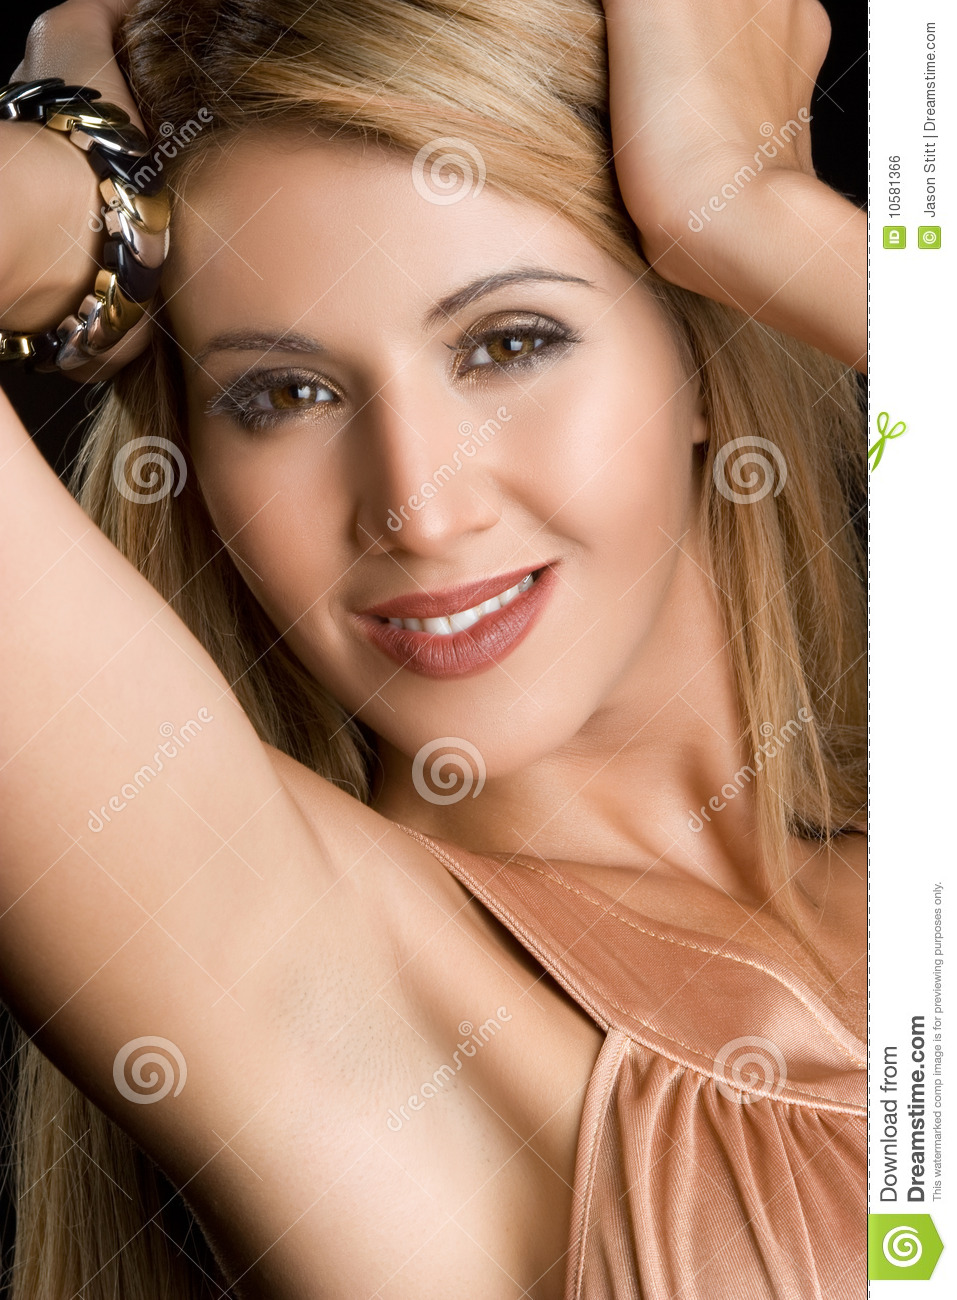 Pretty Mexican Woman Royalty Free Stock Image